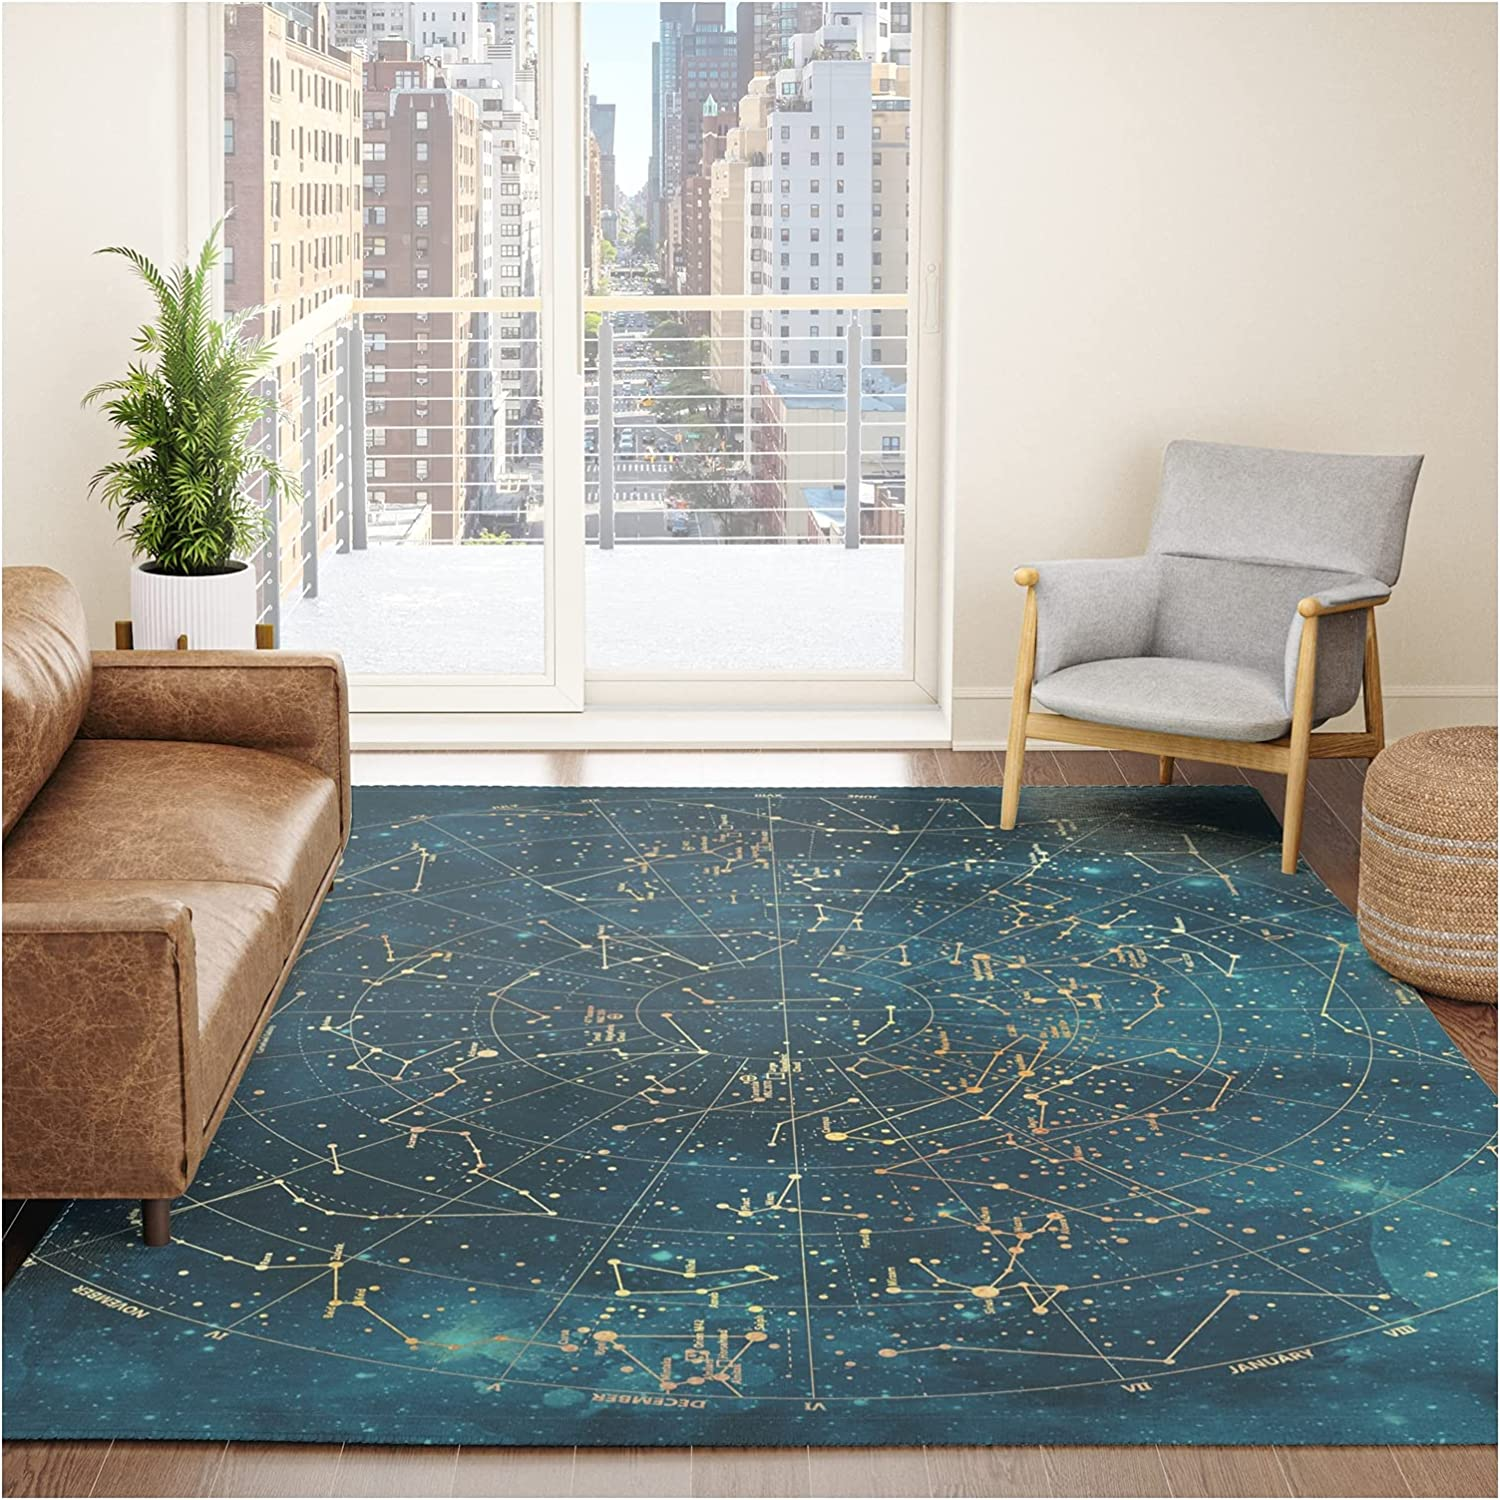 Under Constellations by discount ''cvogiatzi. on Modern x Rug - 8' Throw Max 86% OFF